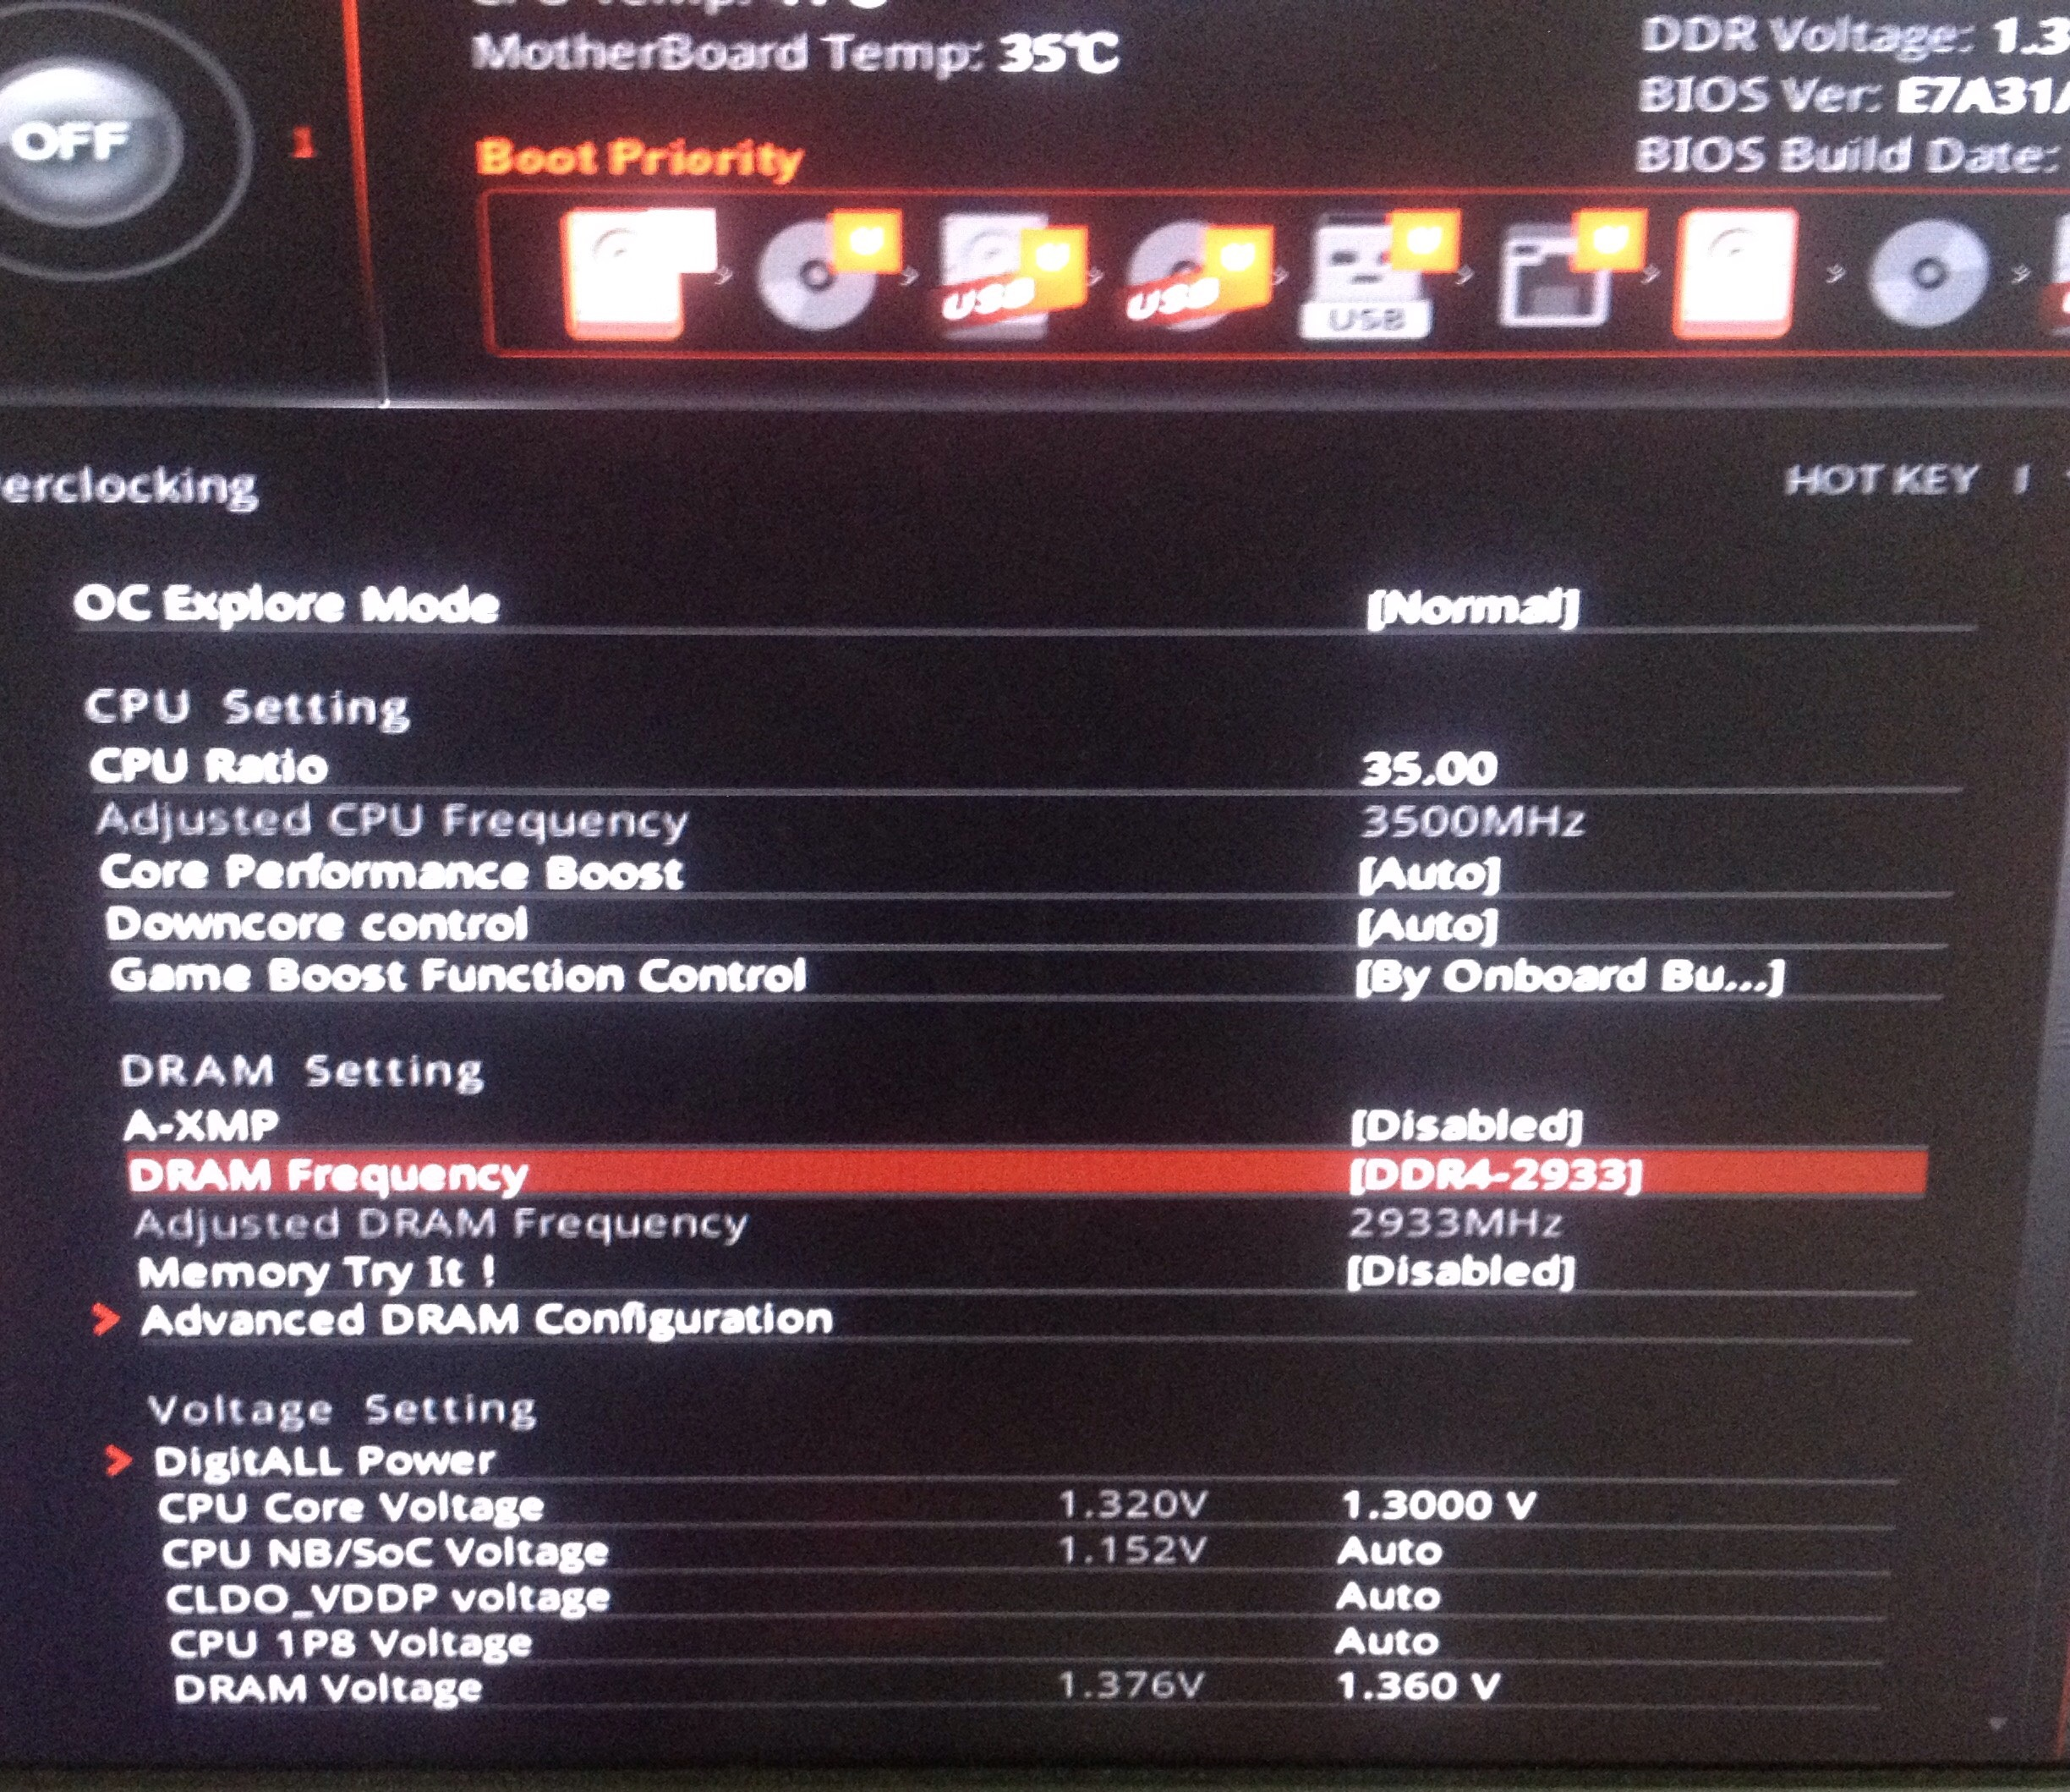 Ryzen 7 overclock is trolling - CPUs, Motherboards, and Memory